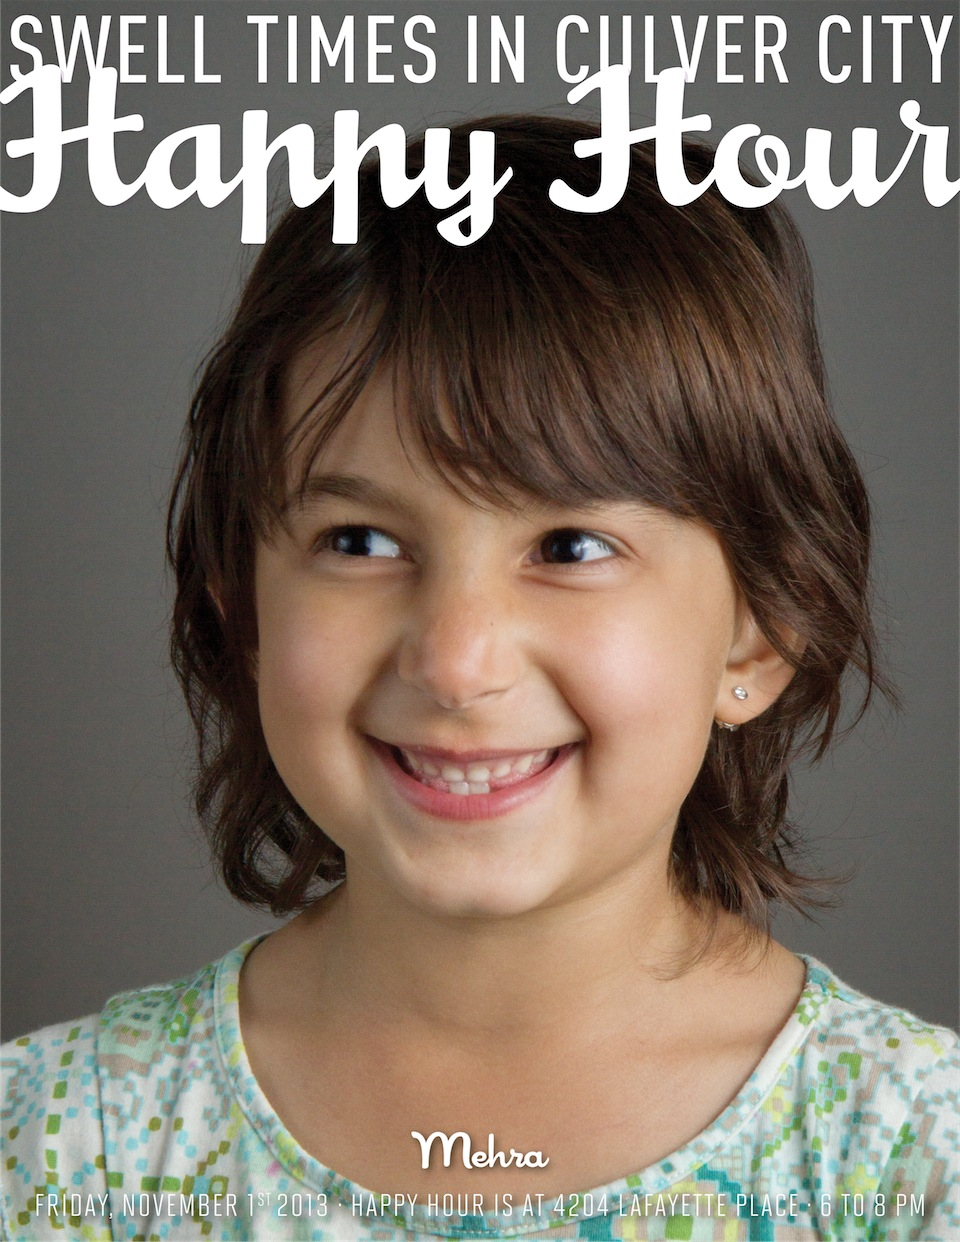 HappyHour_KidsPortraits_PartTwo_2013_10_31__23h125.jpeg